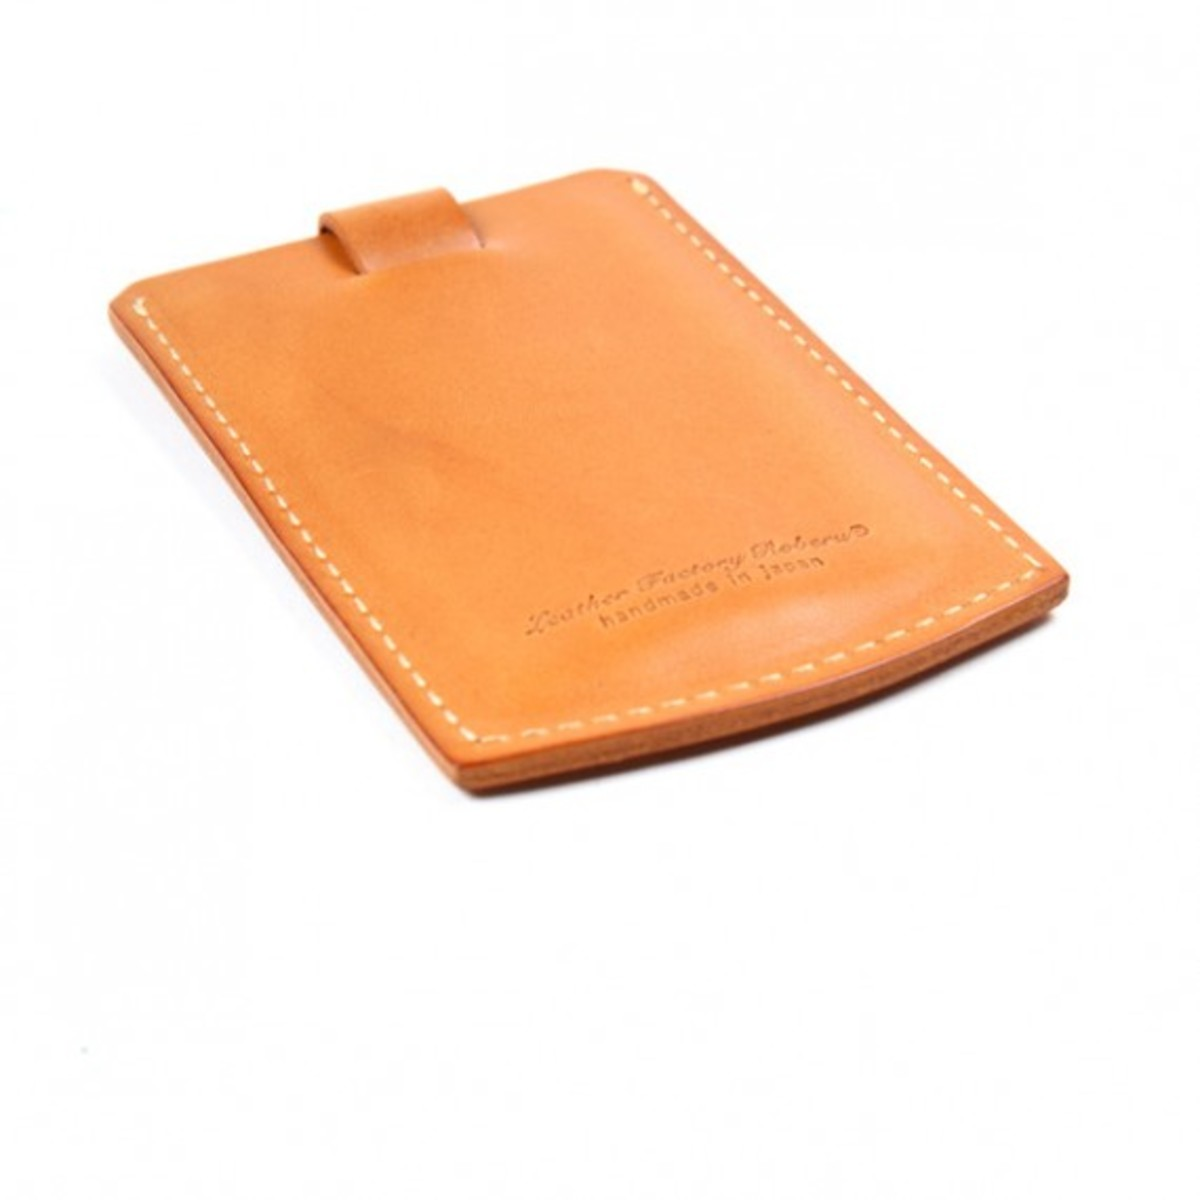 roberu-leather-card-holder-03